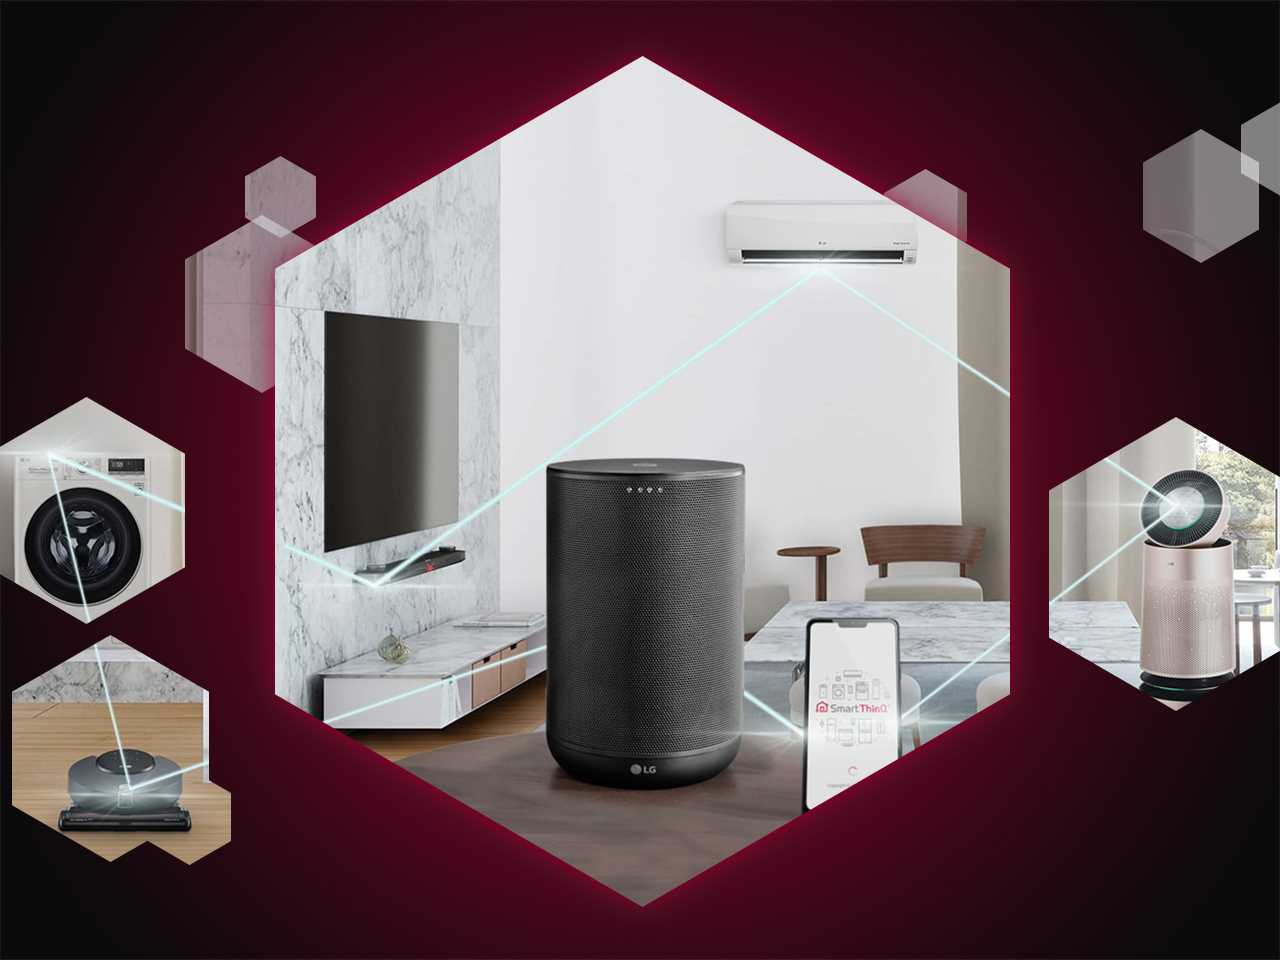 LG_MAGAZINE_Banner_LG-ThinQ,_Smart-Home_2019_1280х960_03.jpg